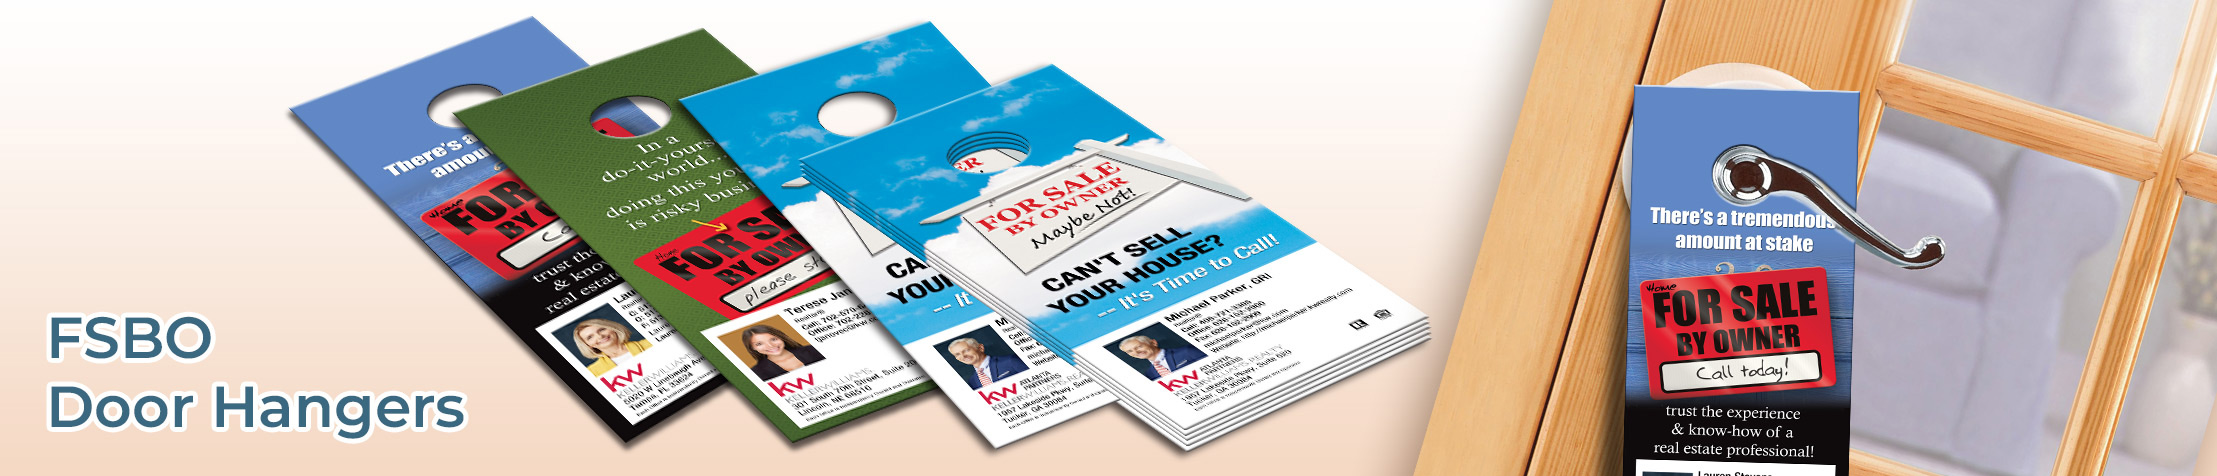 Keller Williams FSBO Door Hangers - KW Approved Vendor Gloss Door Knockers for Realtors | BestPrintBuy.com